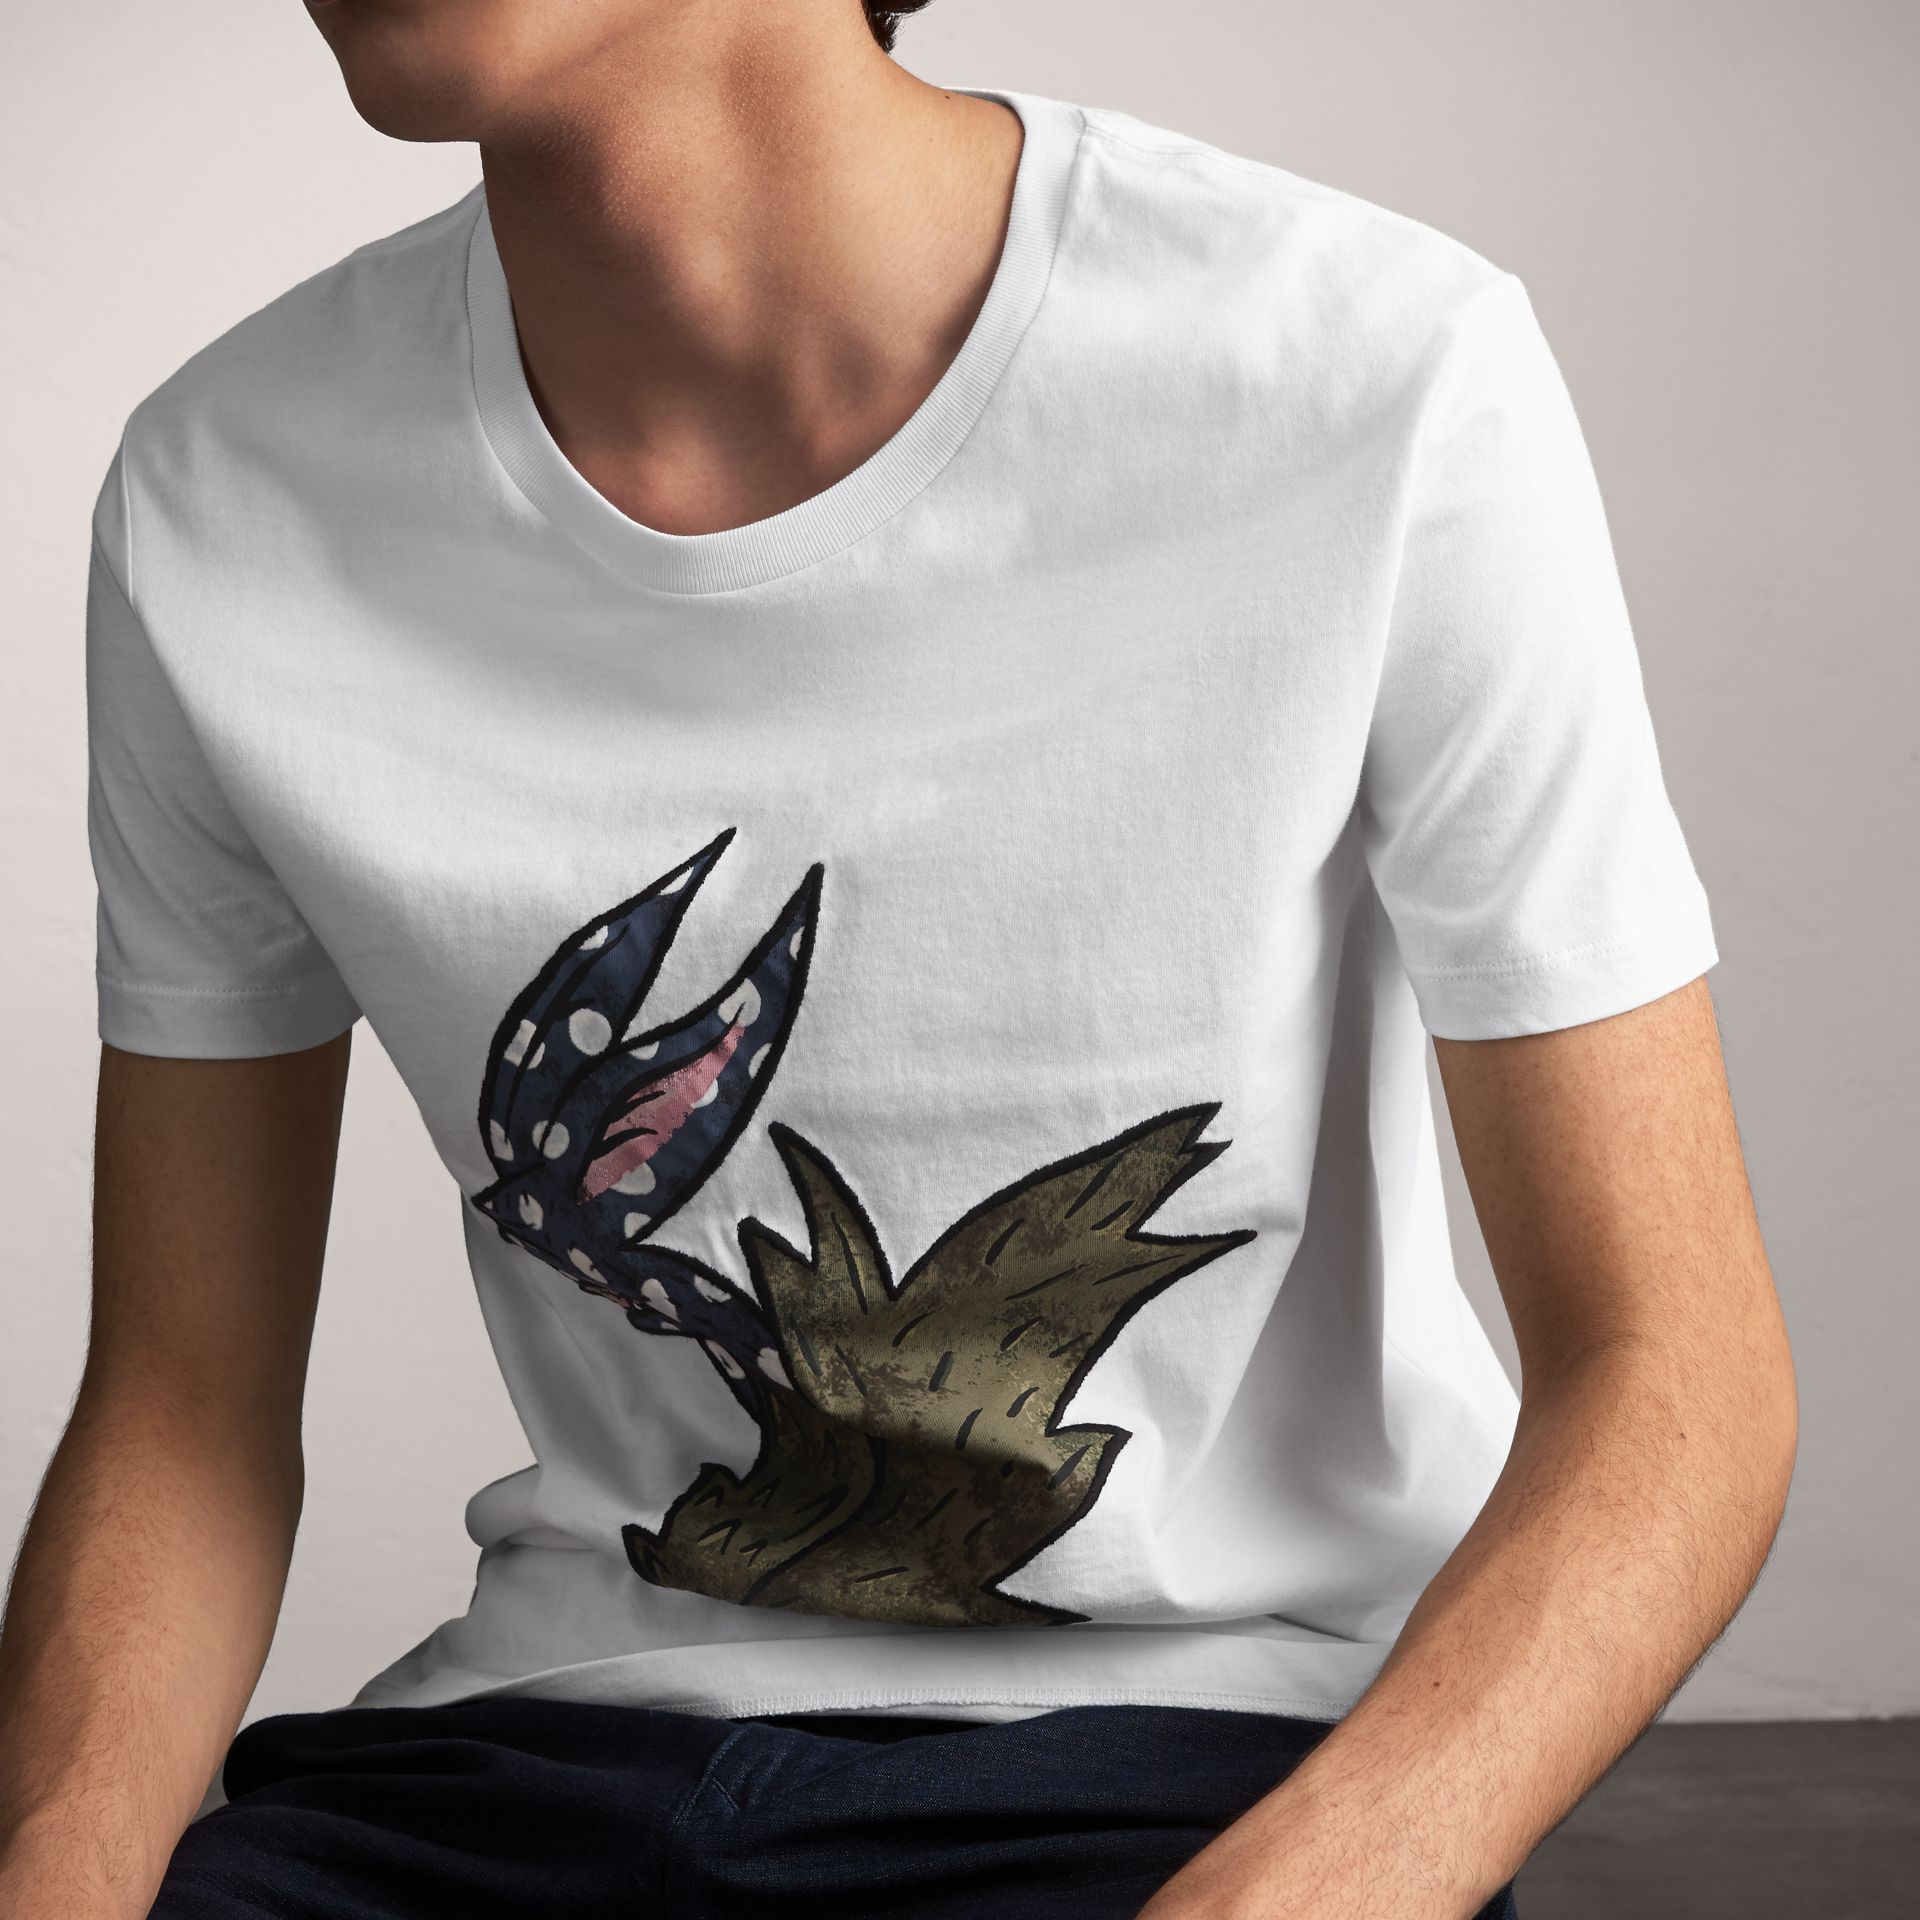 Flocked and Embroidered Beasts Print Cotton T-shirt in White - Men | Burberry United Kingdom - gallery image 4